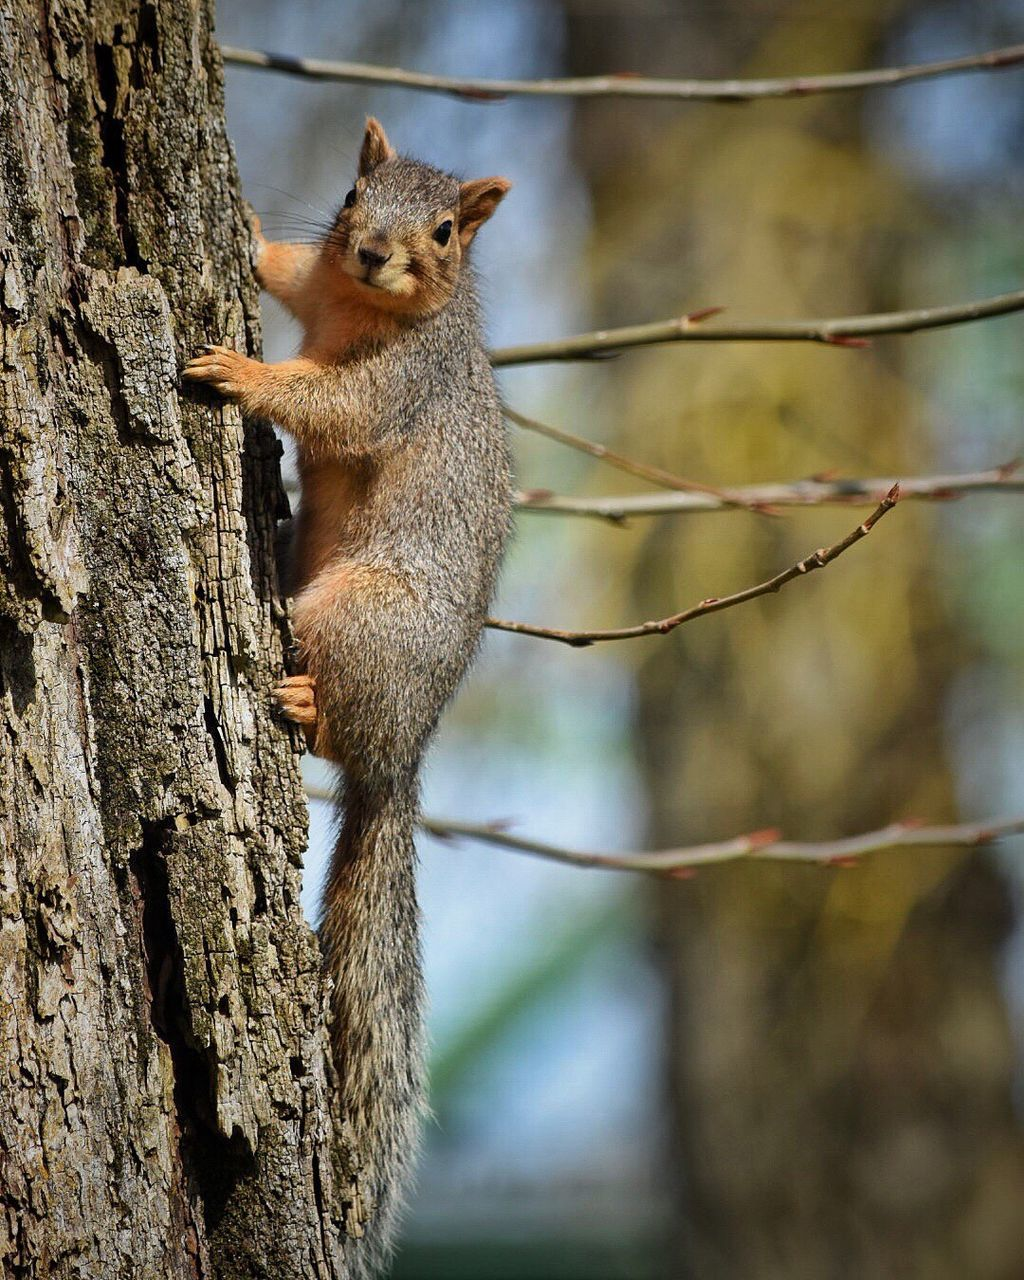 one animal, tree, animals in the wild, tree trunk, mammal, animal wildlife, squirrel, animal themes, outdoors, no people, focus on foreground, day, nature, climbing, branch, close-up